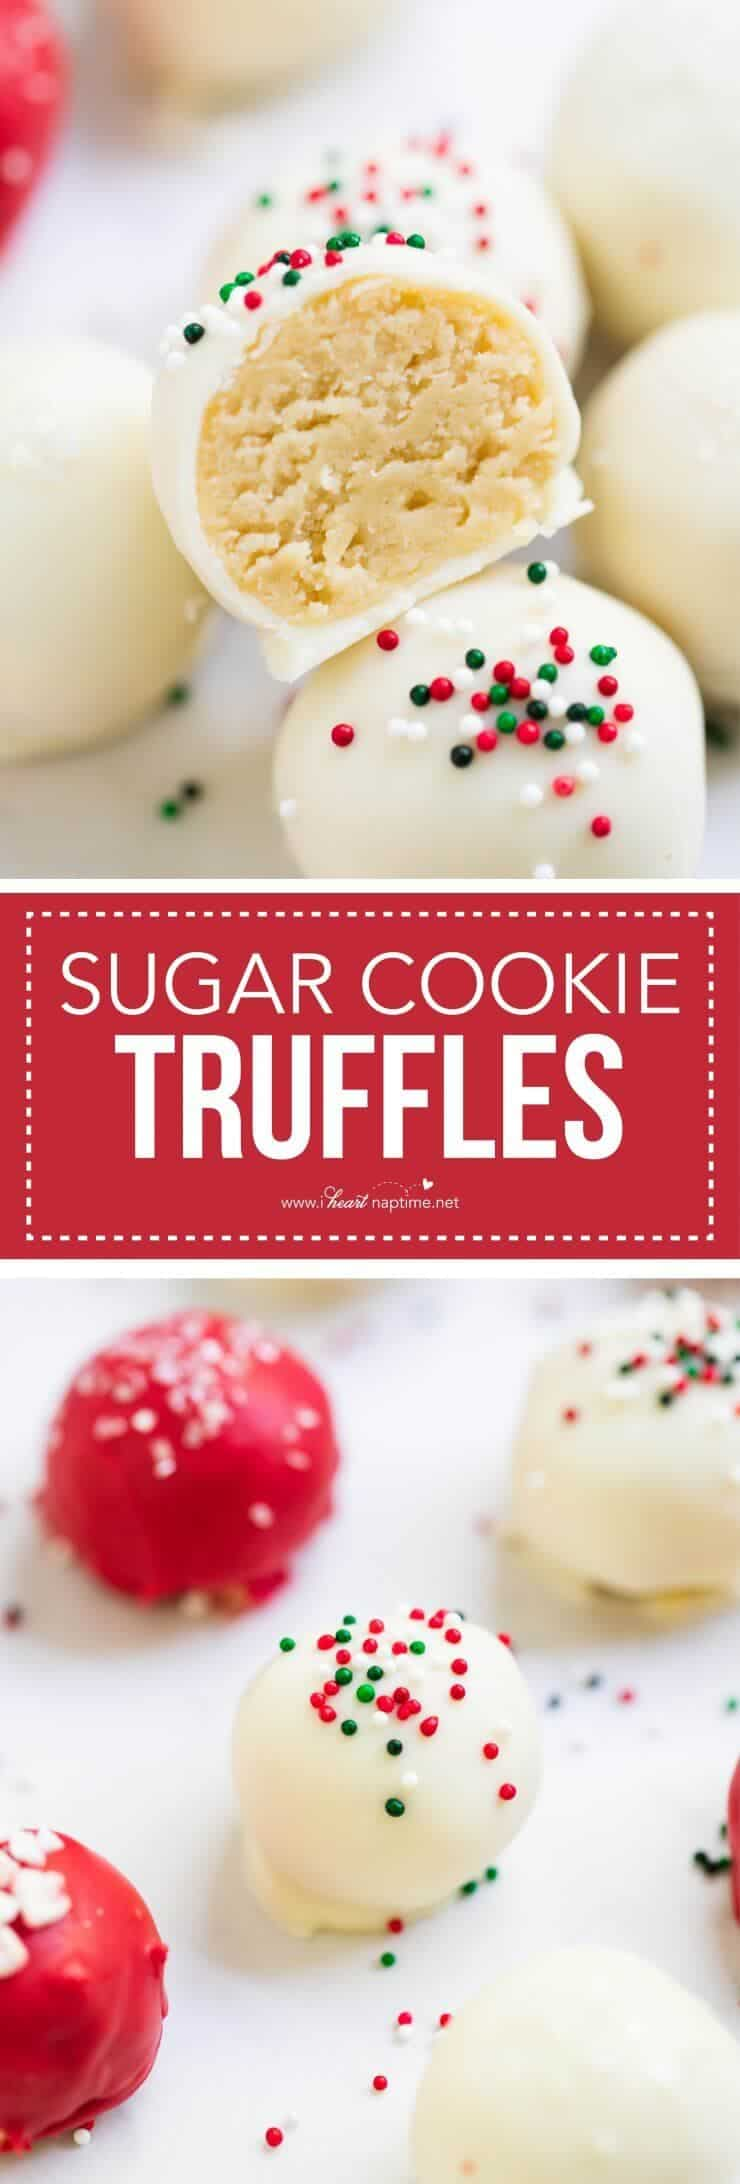 Sugar Cookie Truffles I Heart Nap Time